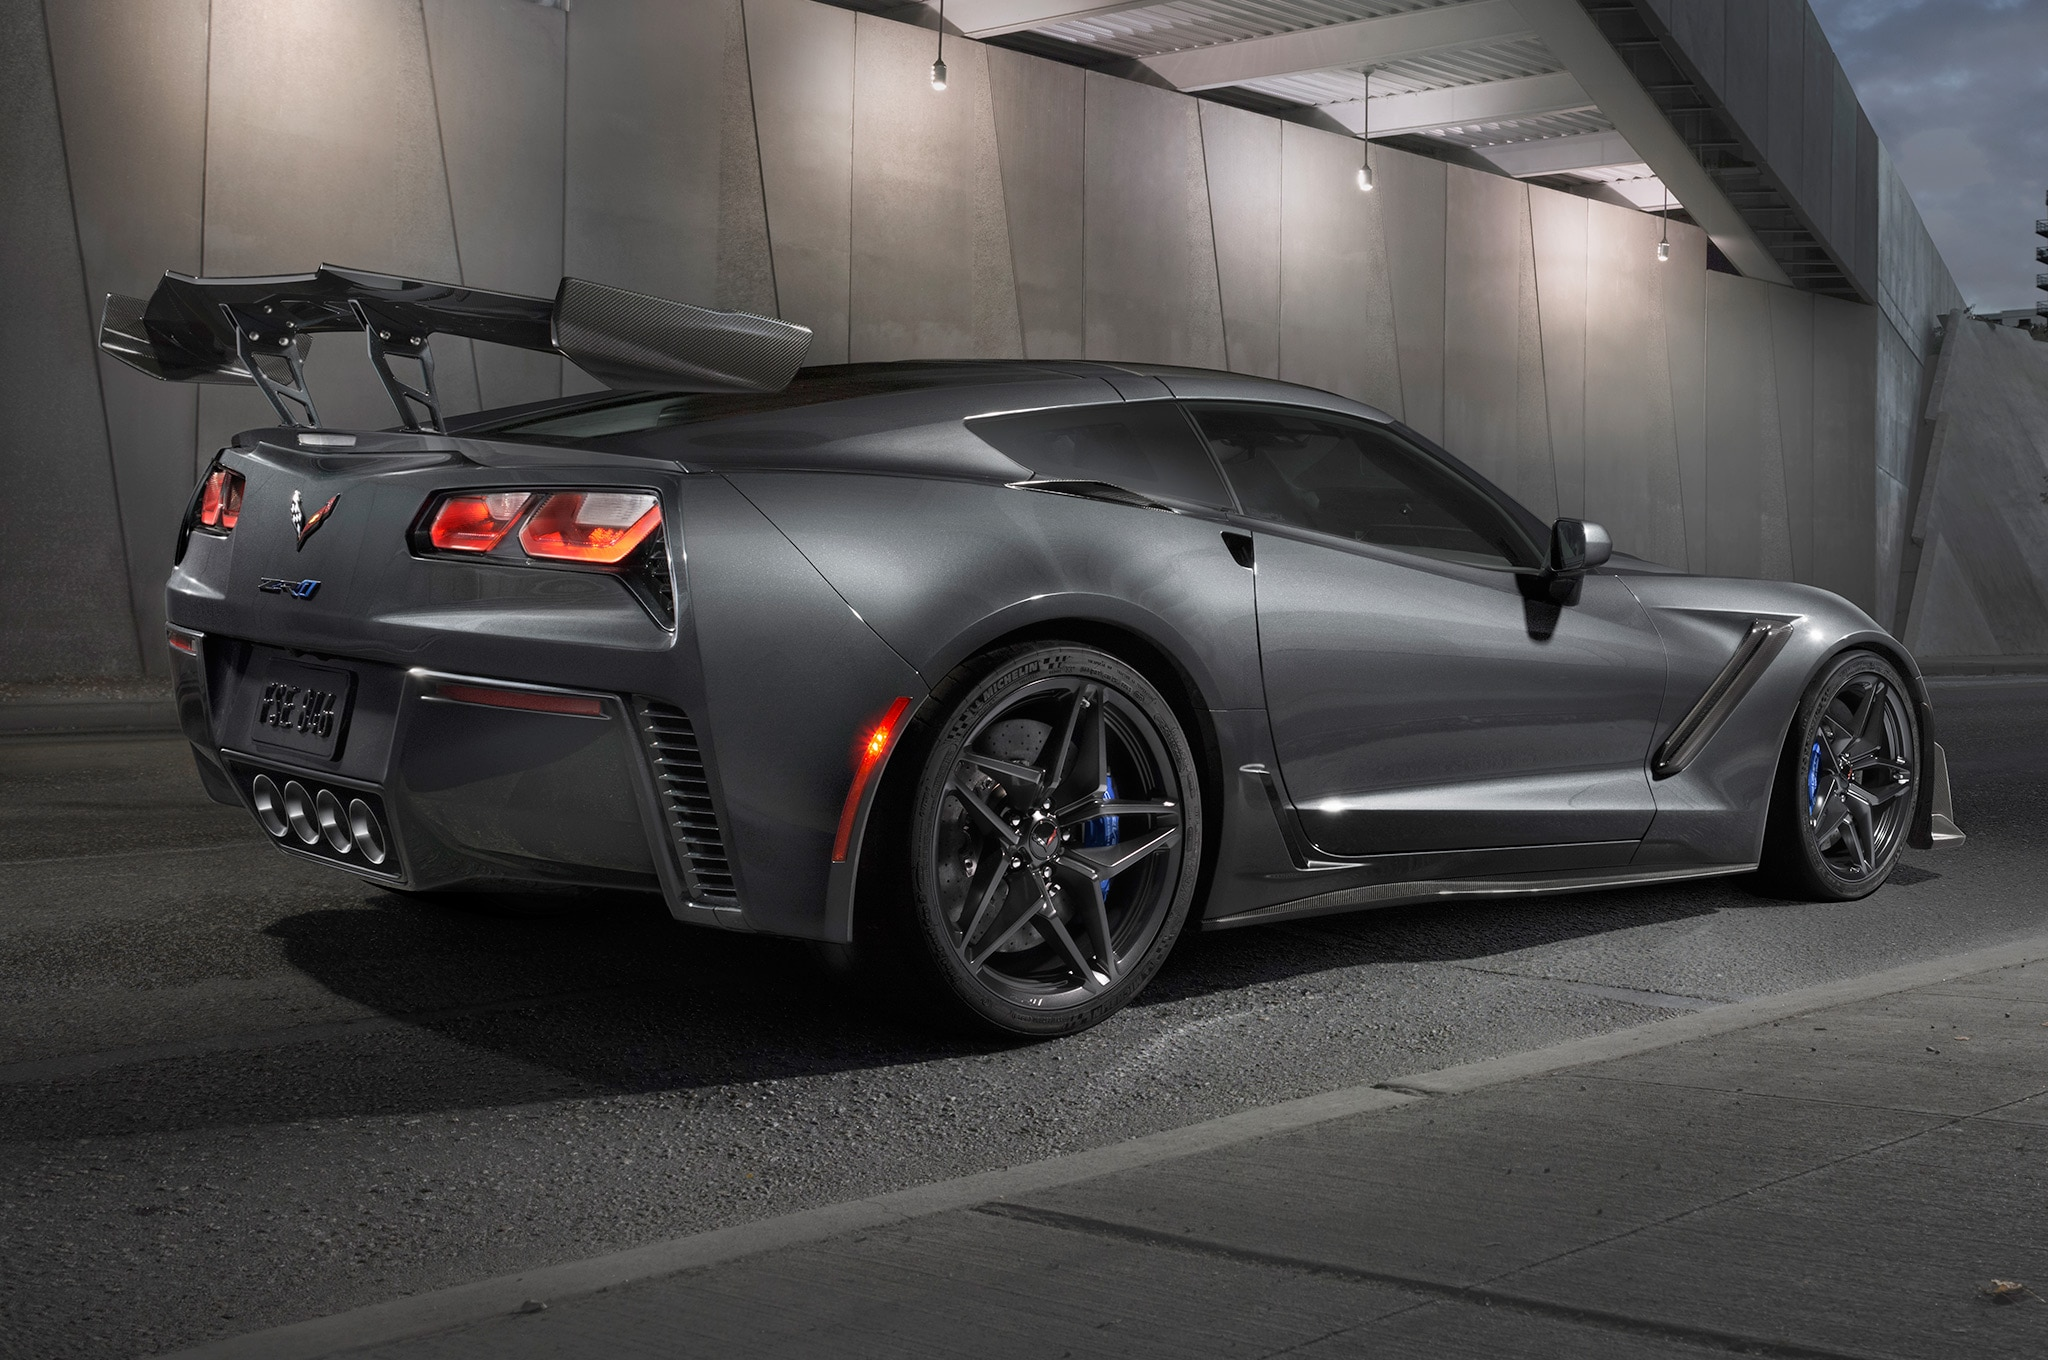 Corvette ZR1: 5 fast facts about Chevy's new supercar